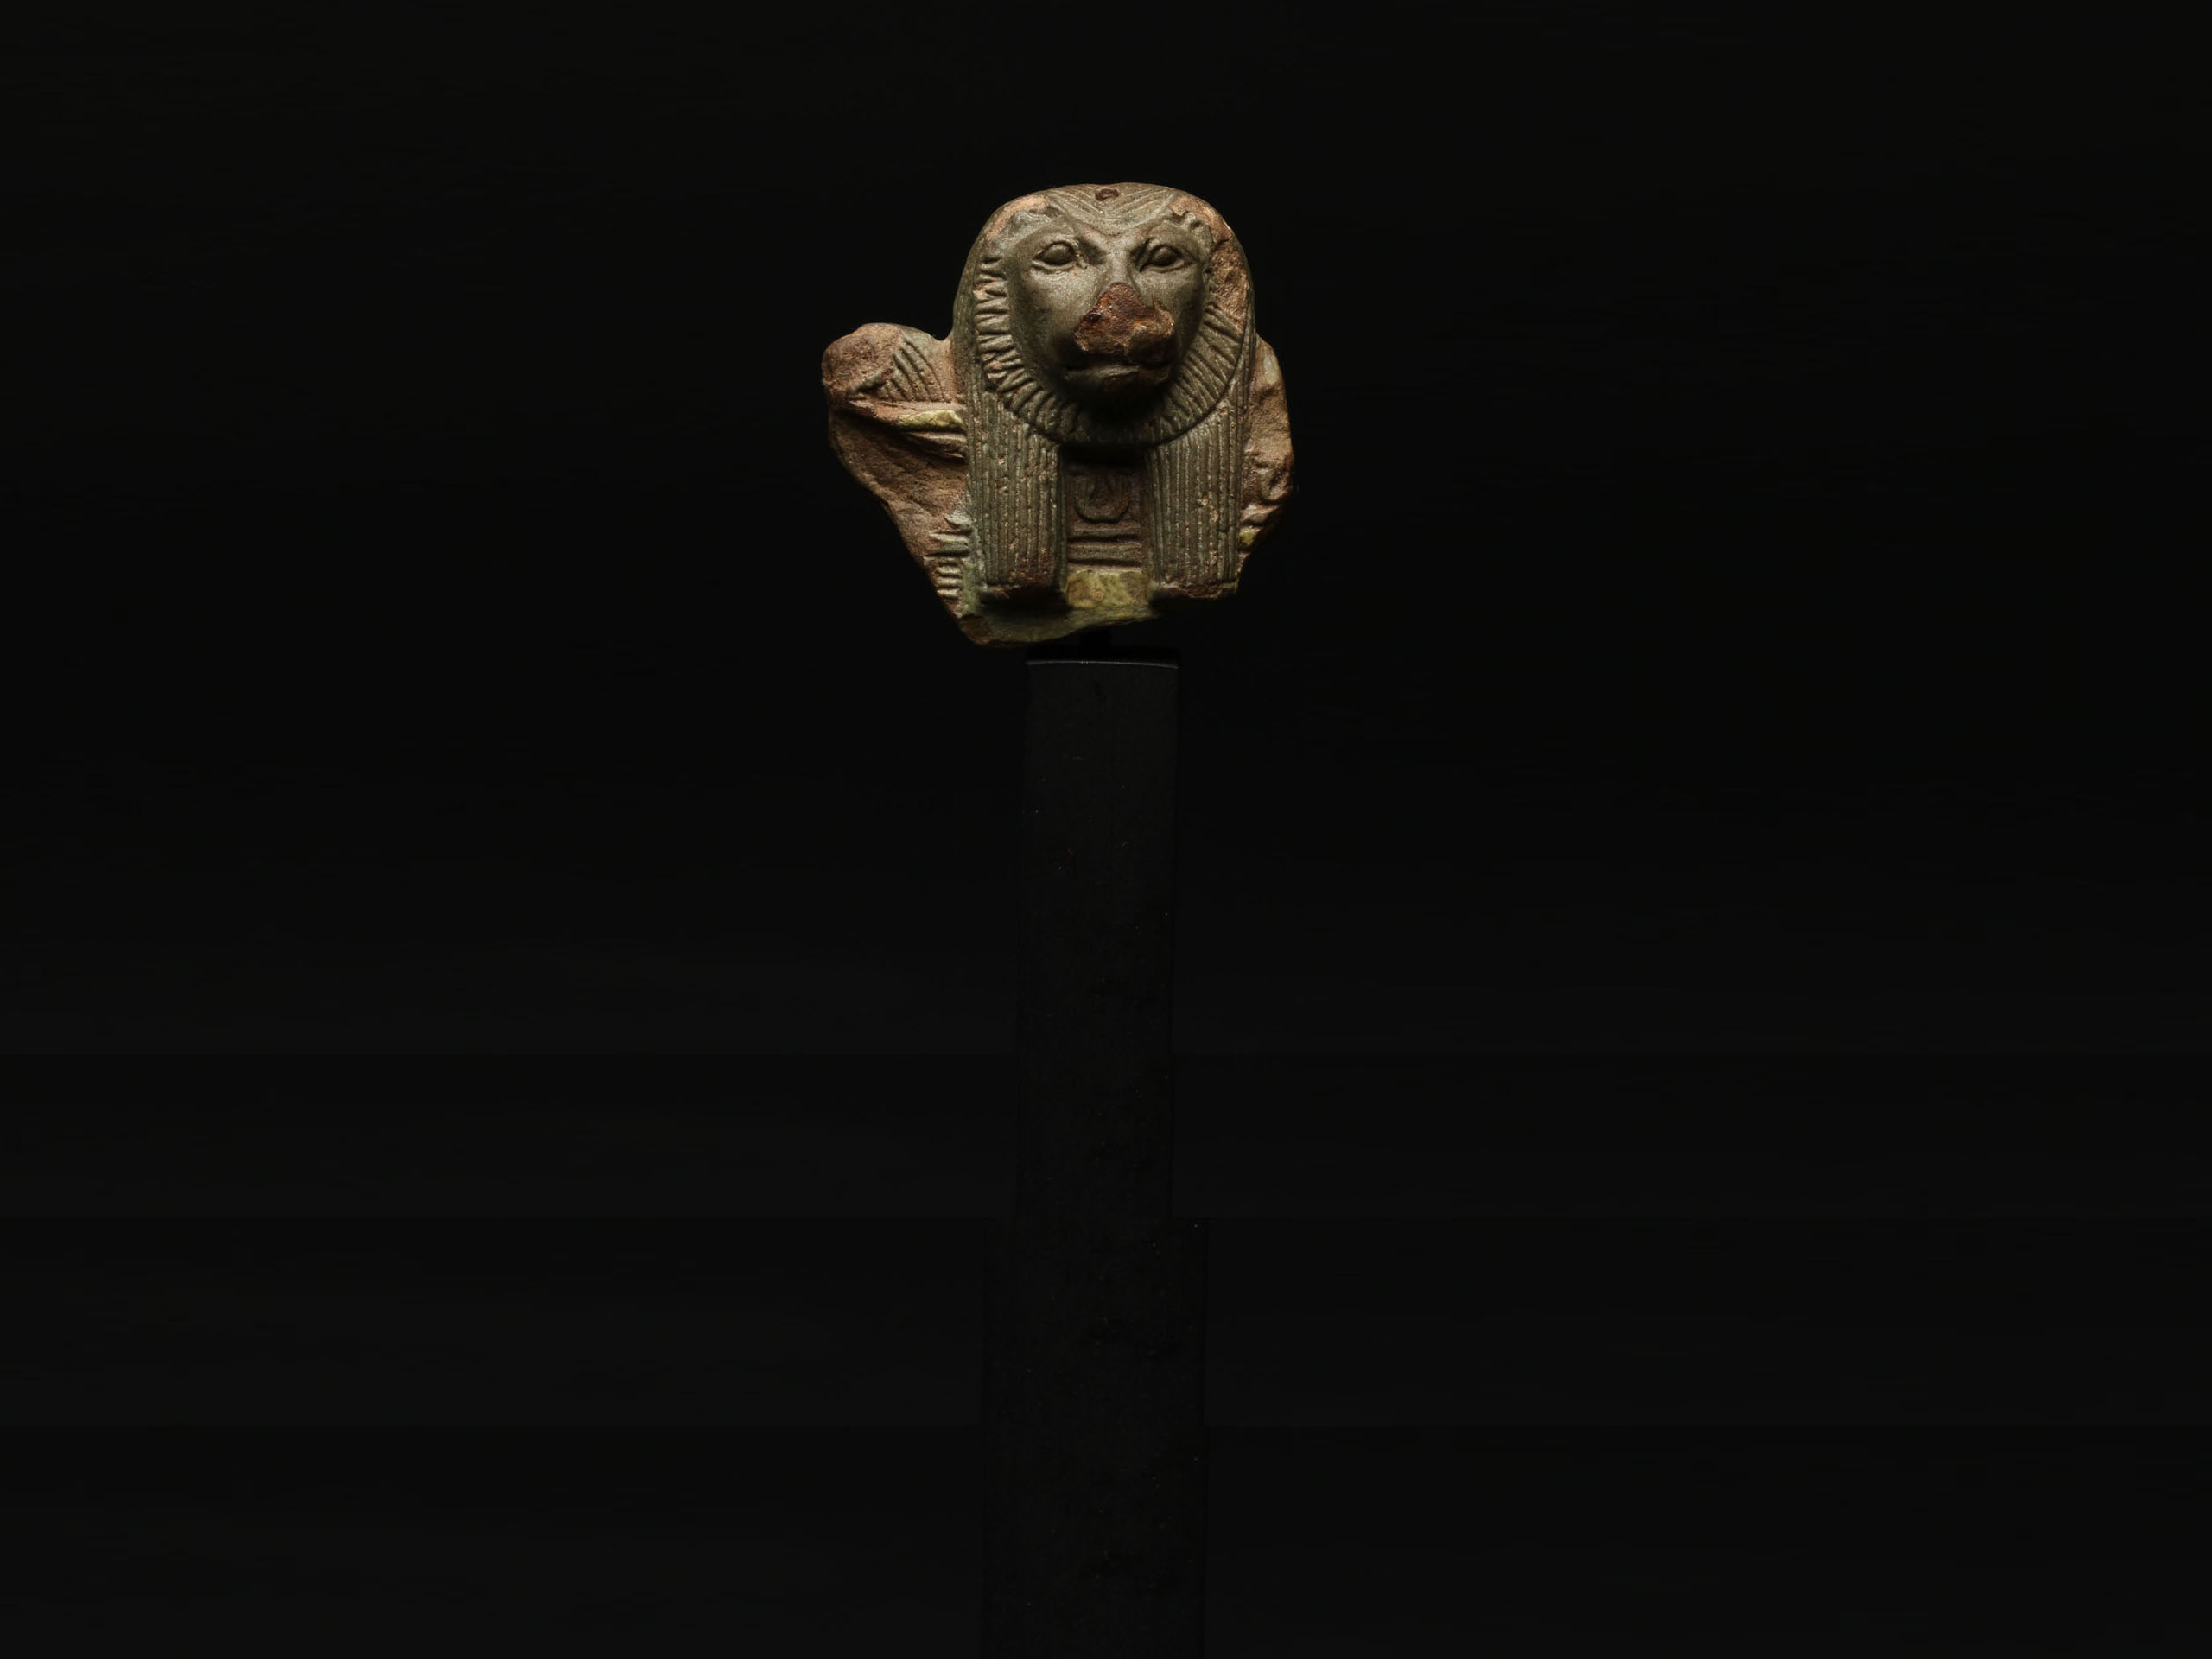 Egyptian Faience: AMULETS IN ANTIQUITY